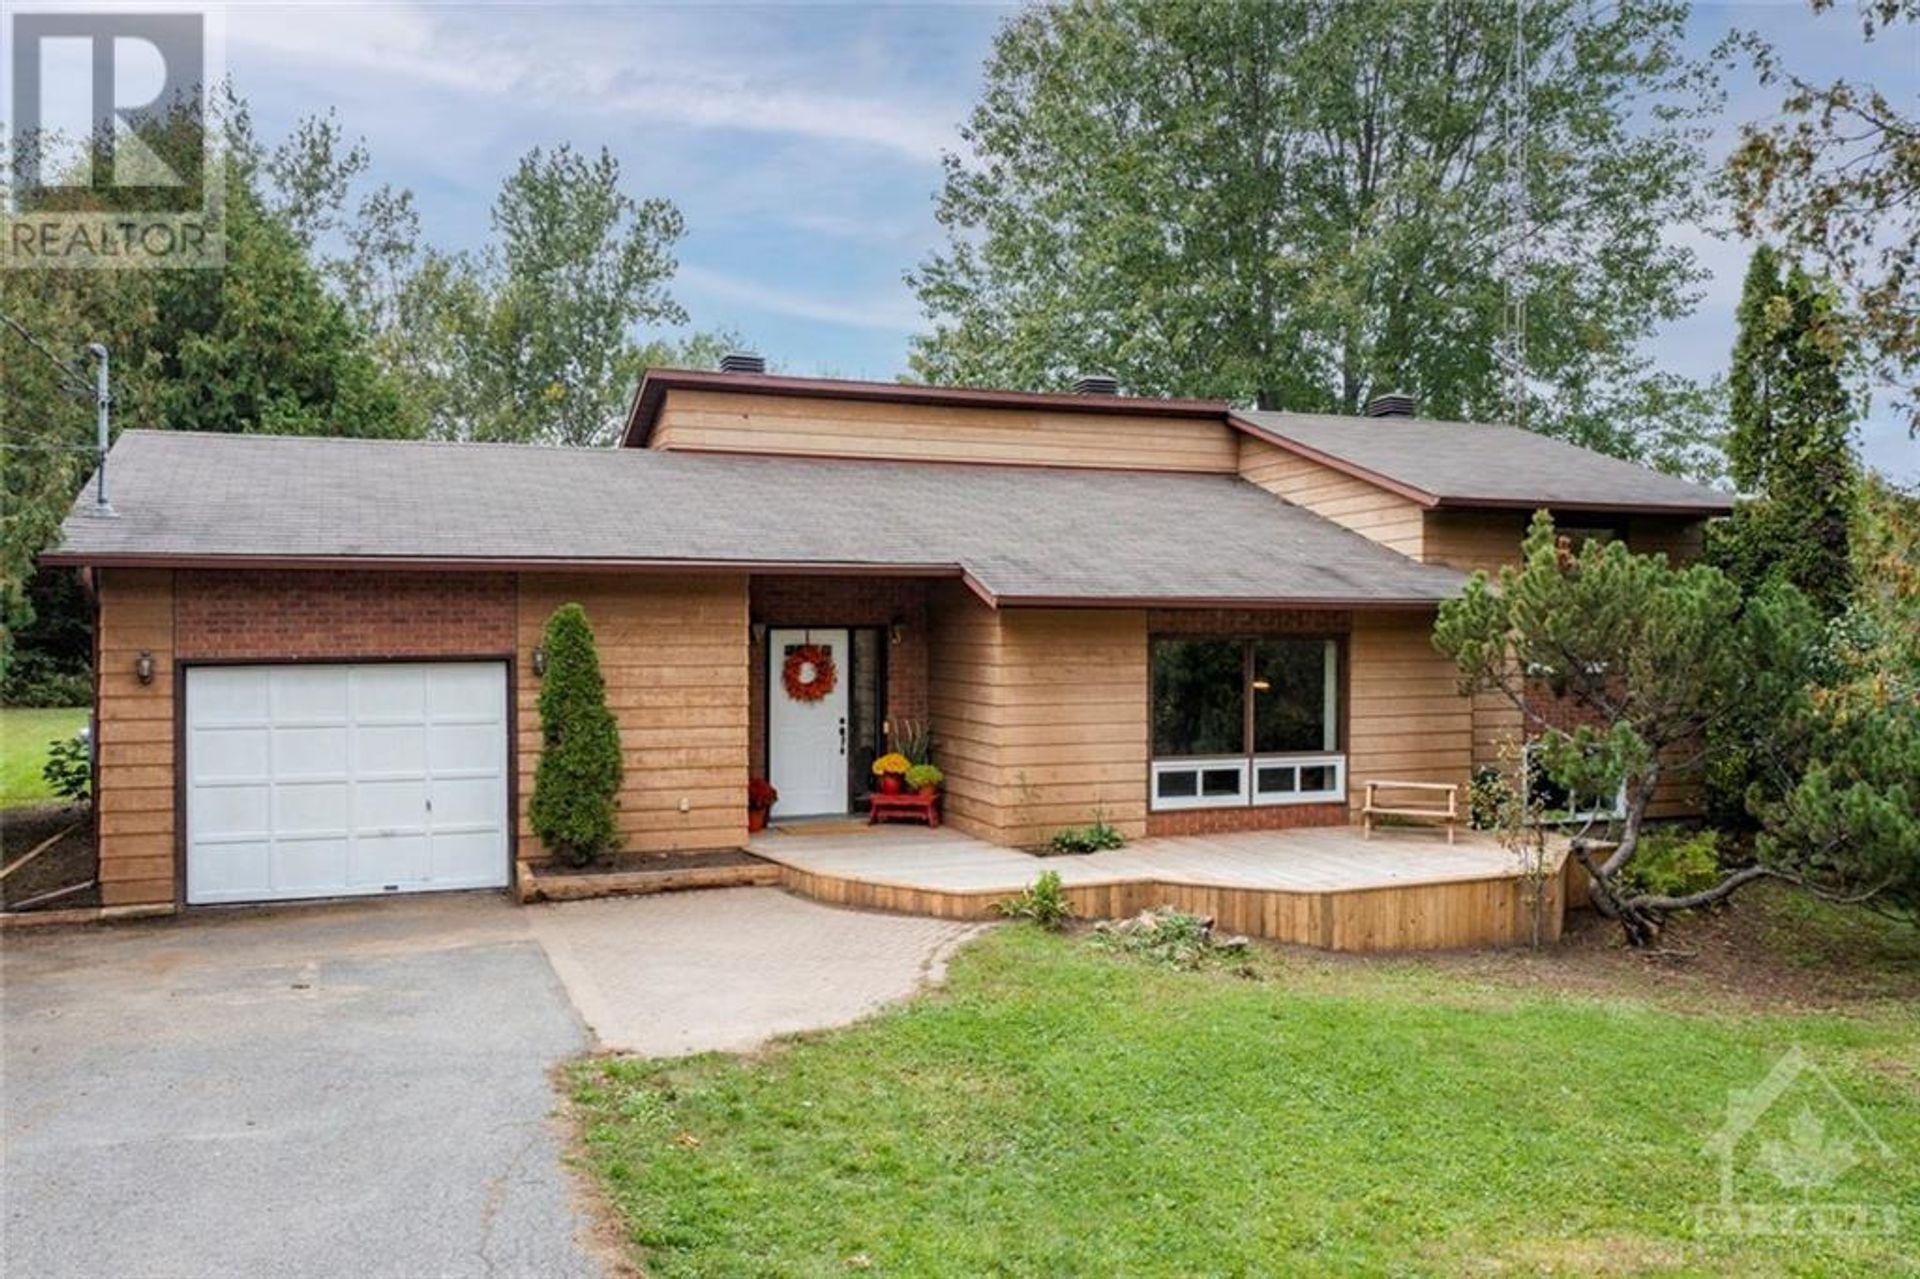 169 Dakers Road, Beckwith, Carleton Place